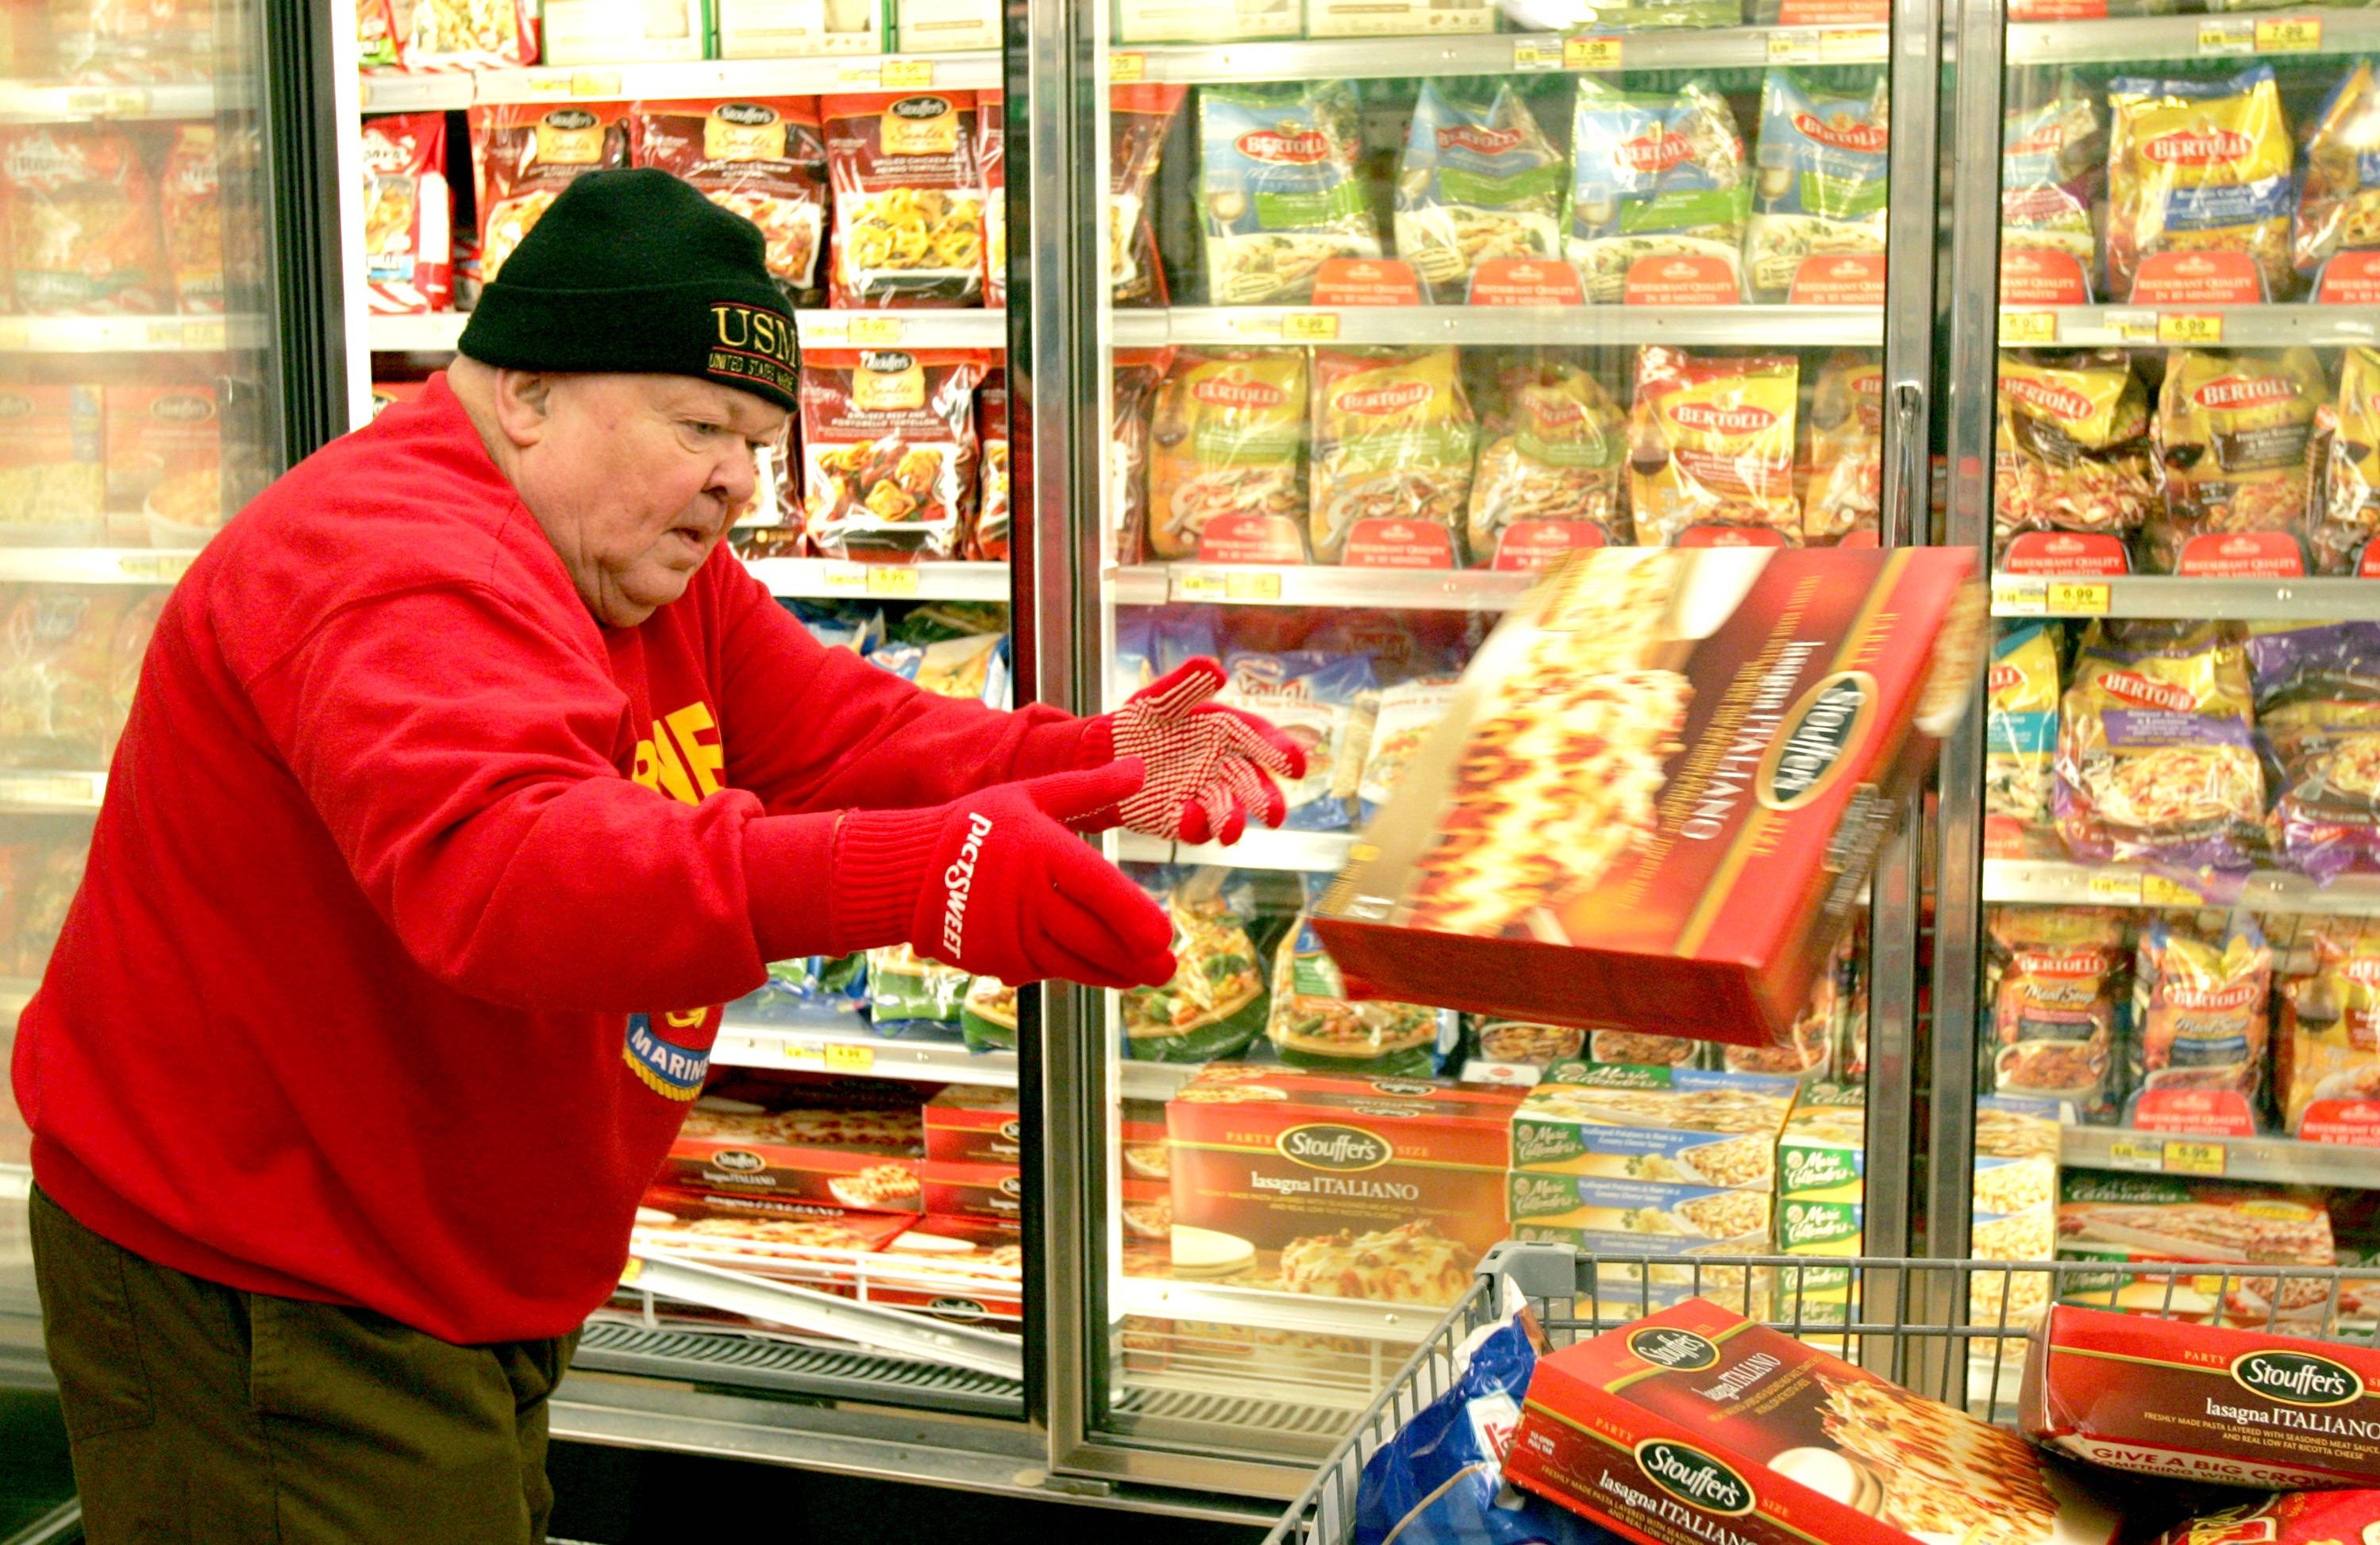 Pradel seldom said no to a fundraising opportunity to help area charities. Here, he races through a grocery store as part of a contest to raise money for a food pantry.